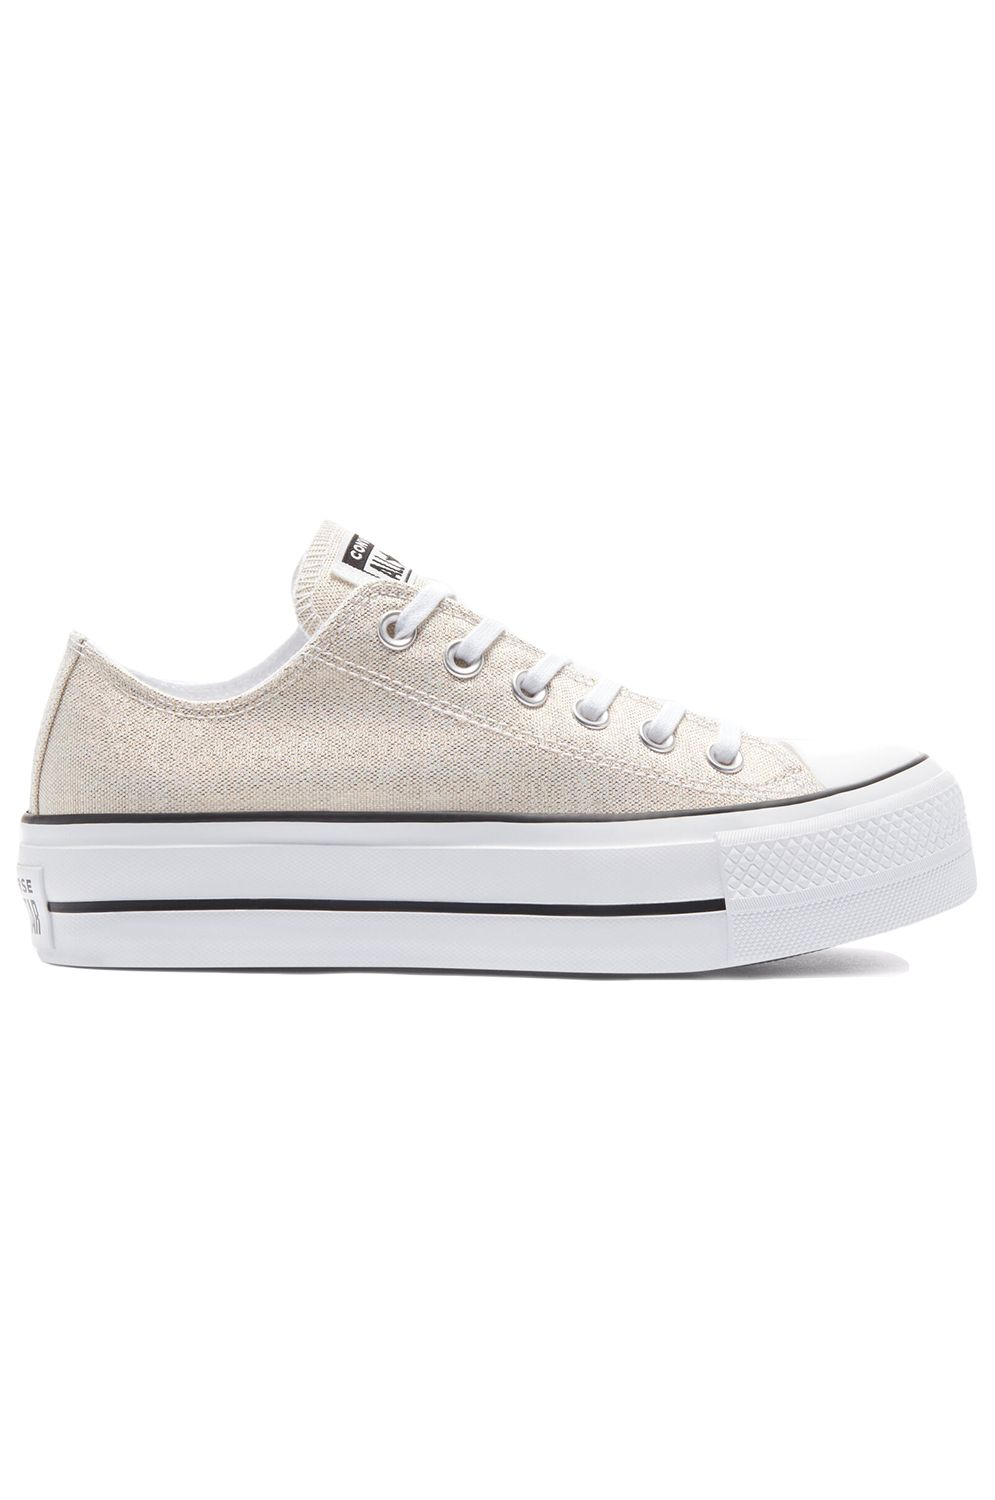 Tenis Converse CHUCK TAYLOR ALL STAR LIFT OX Silver/Black/White